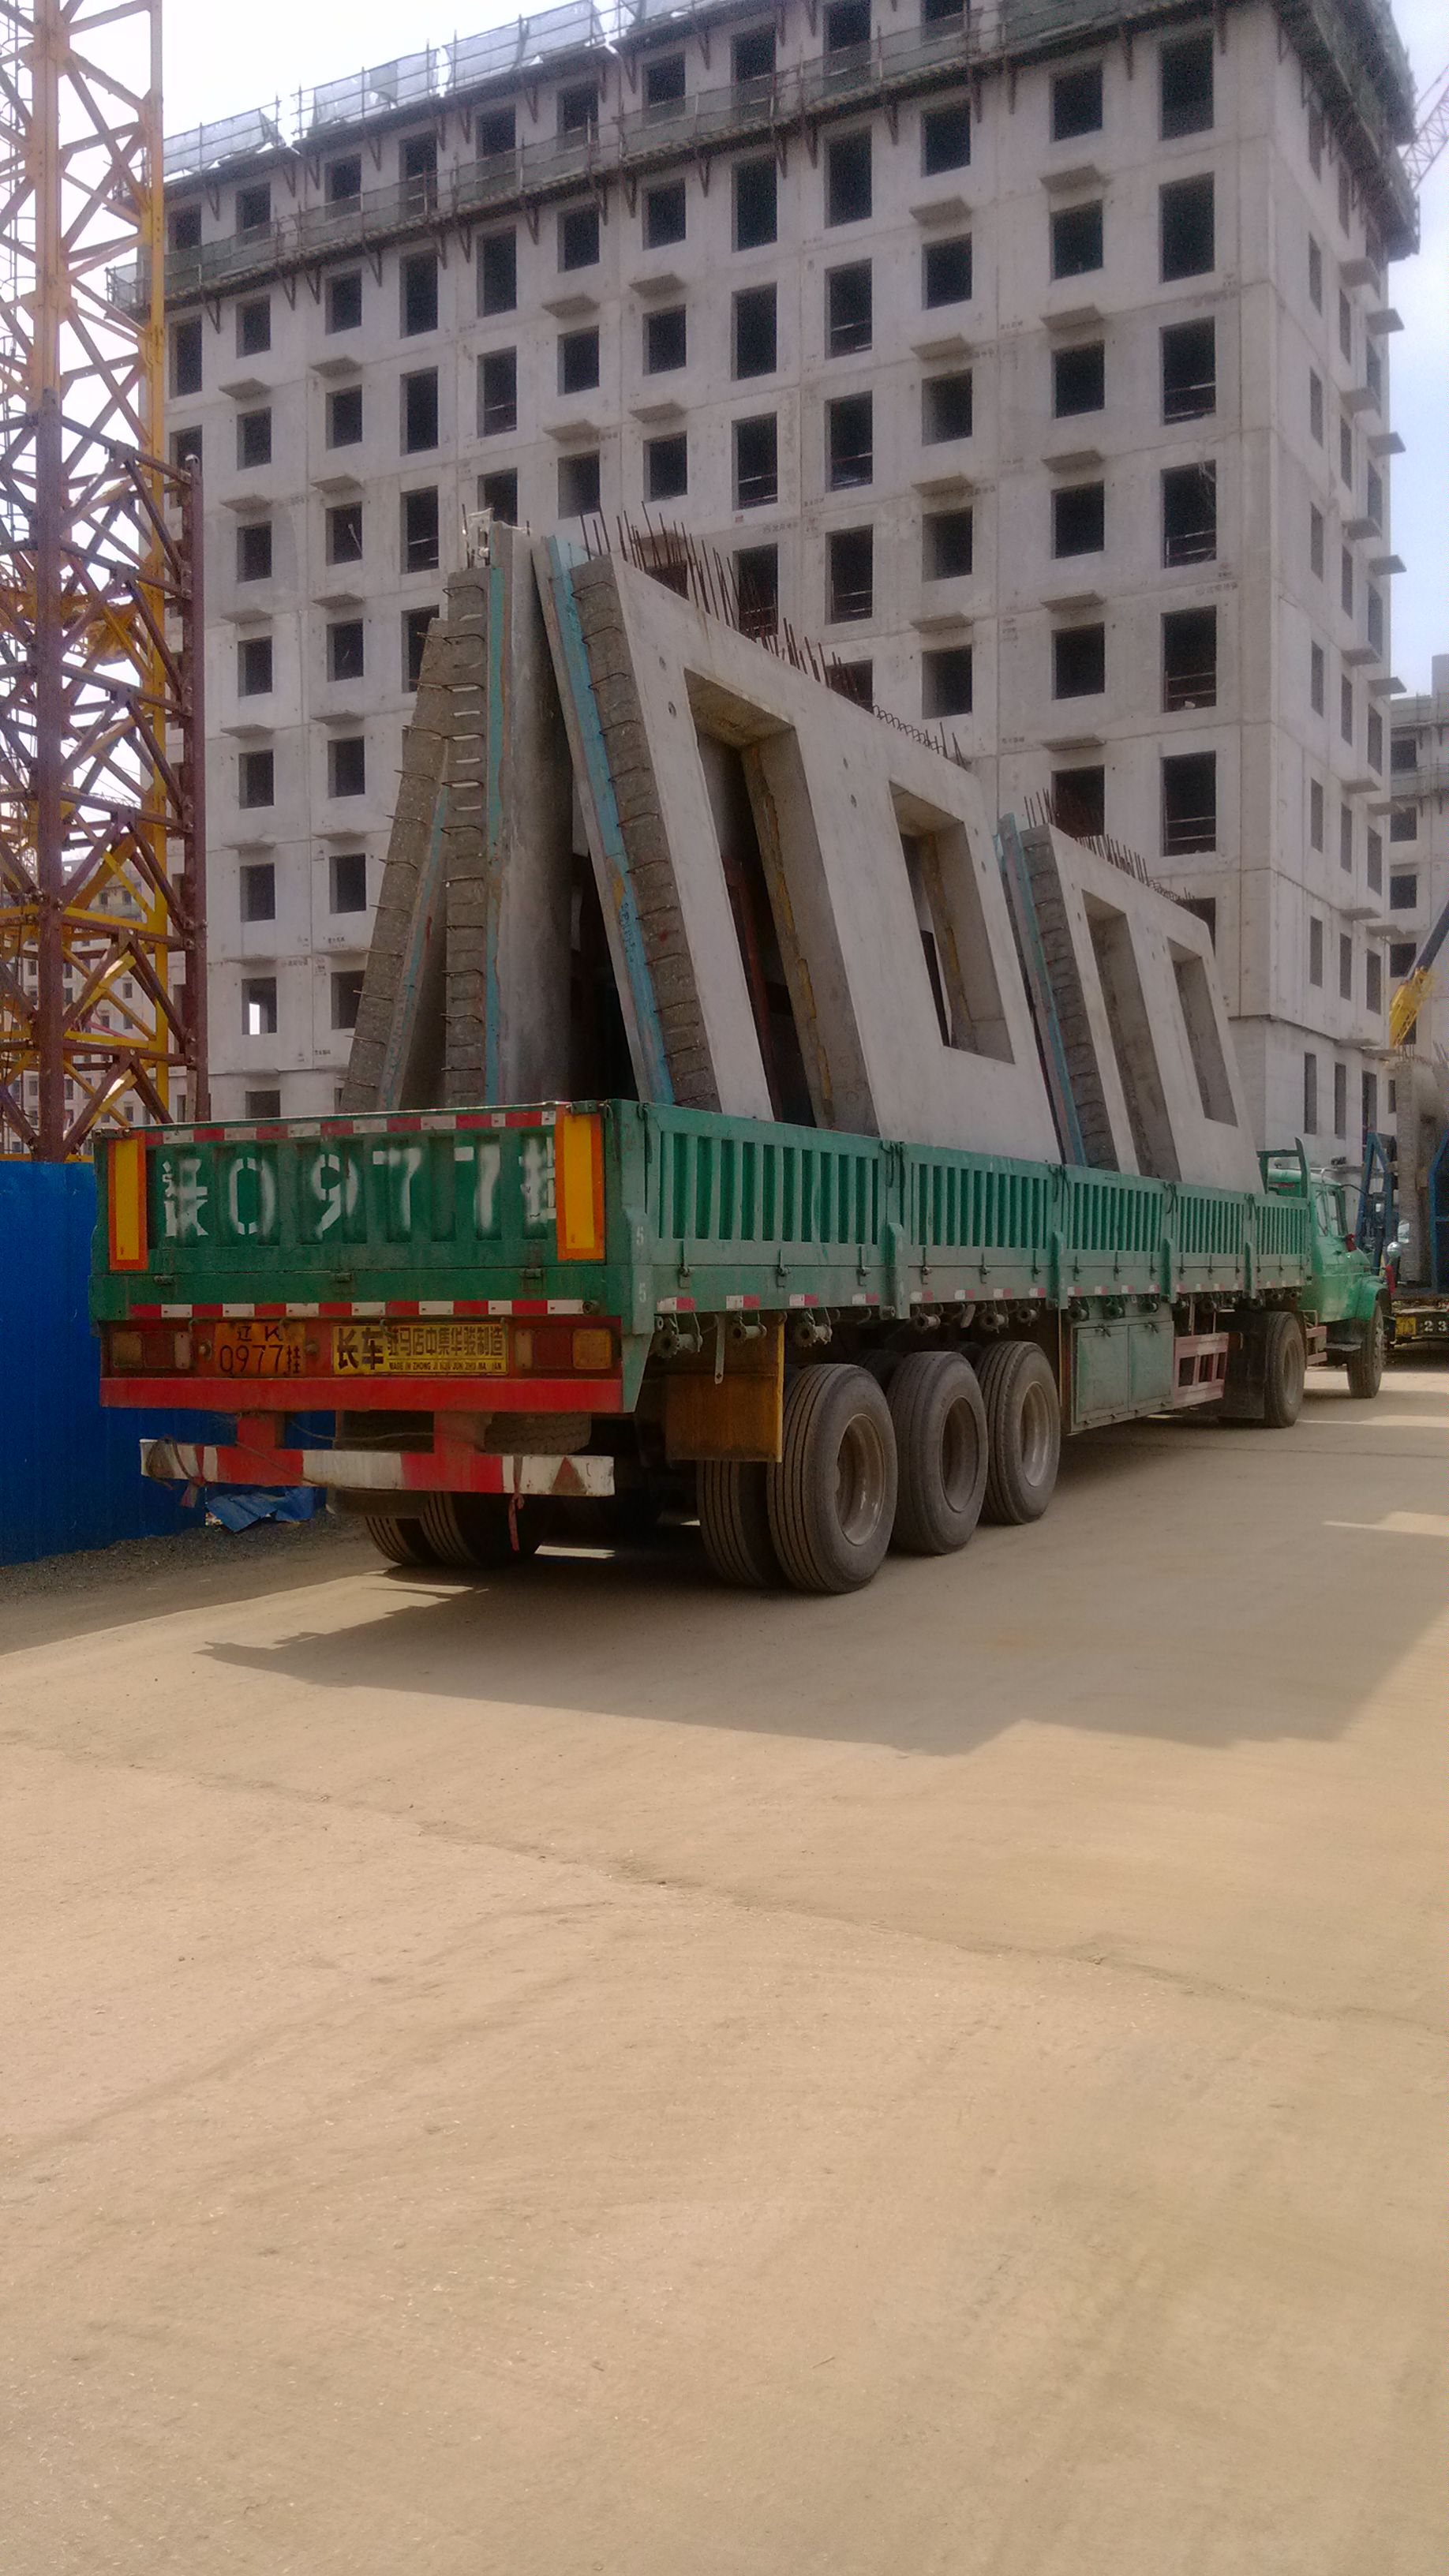 2019 hot sale  Architectural Systems Comparison Matrix making machine , precast concrete machine,  Xuelong shijiazhuang